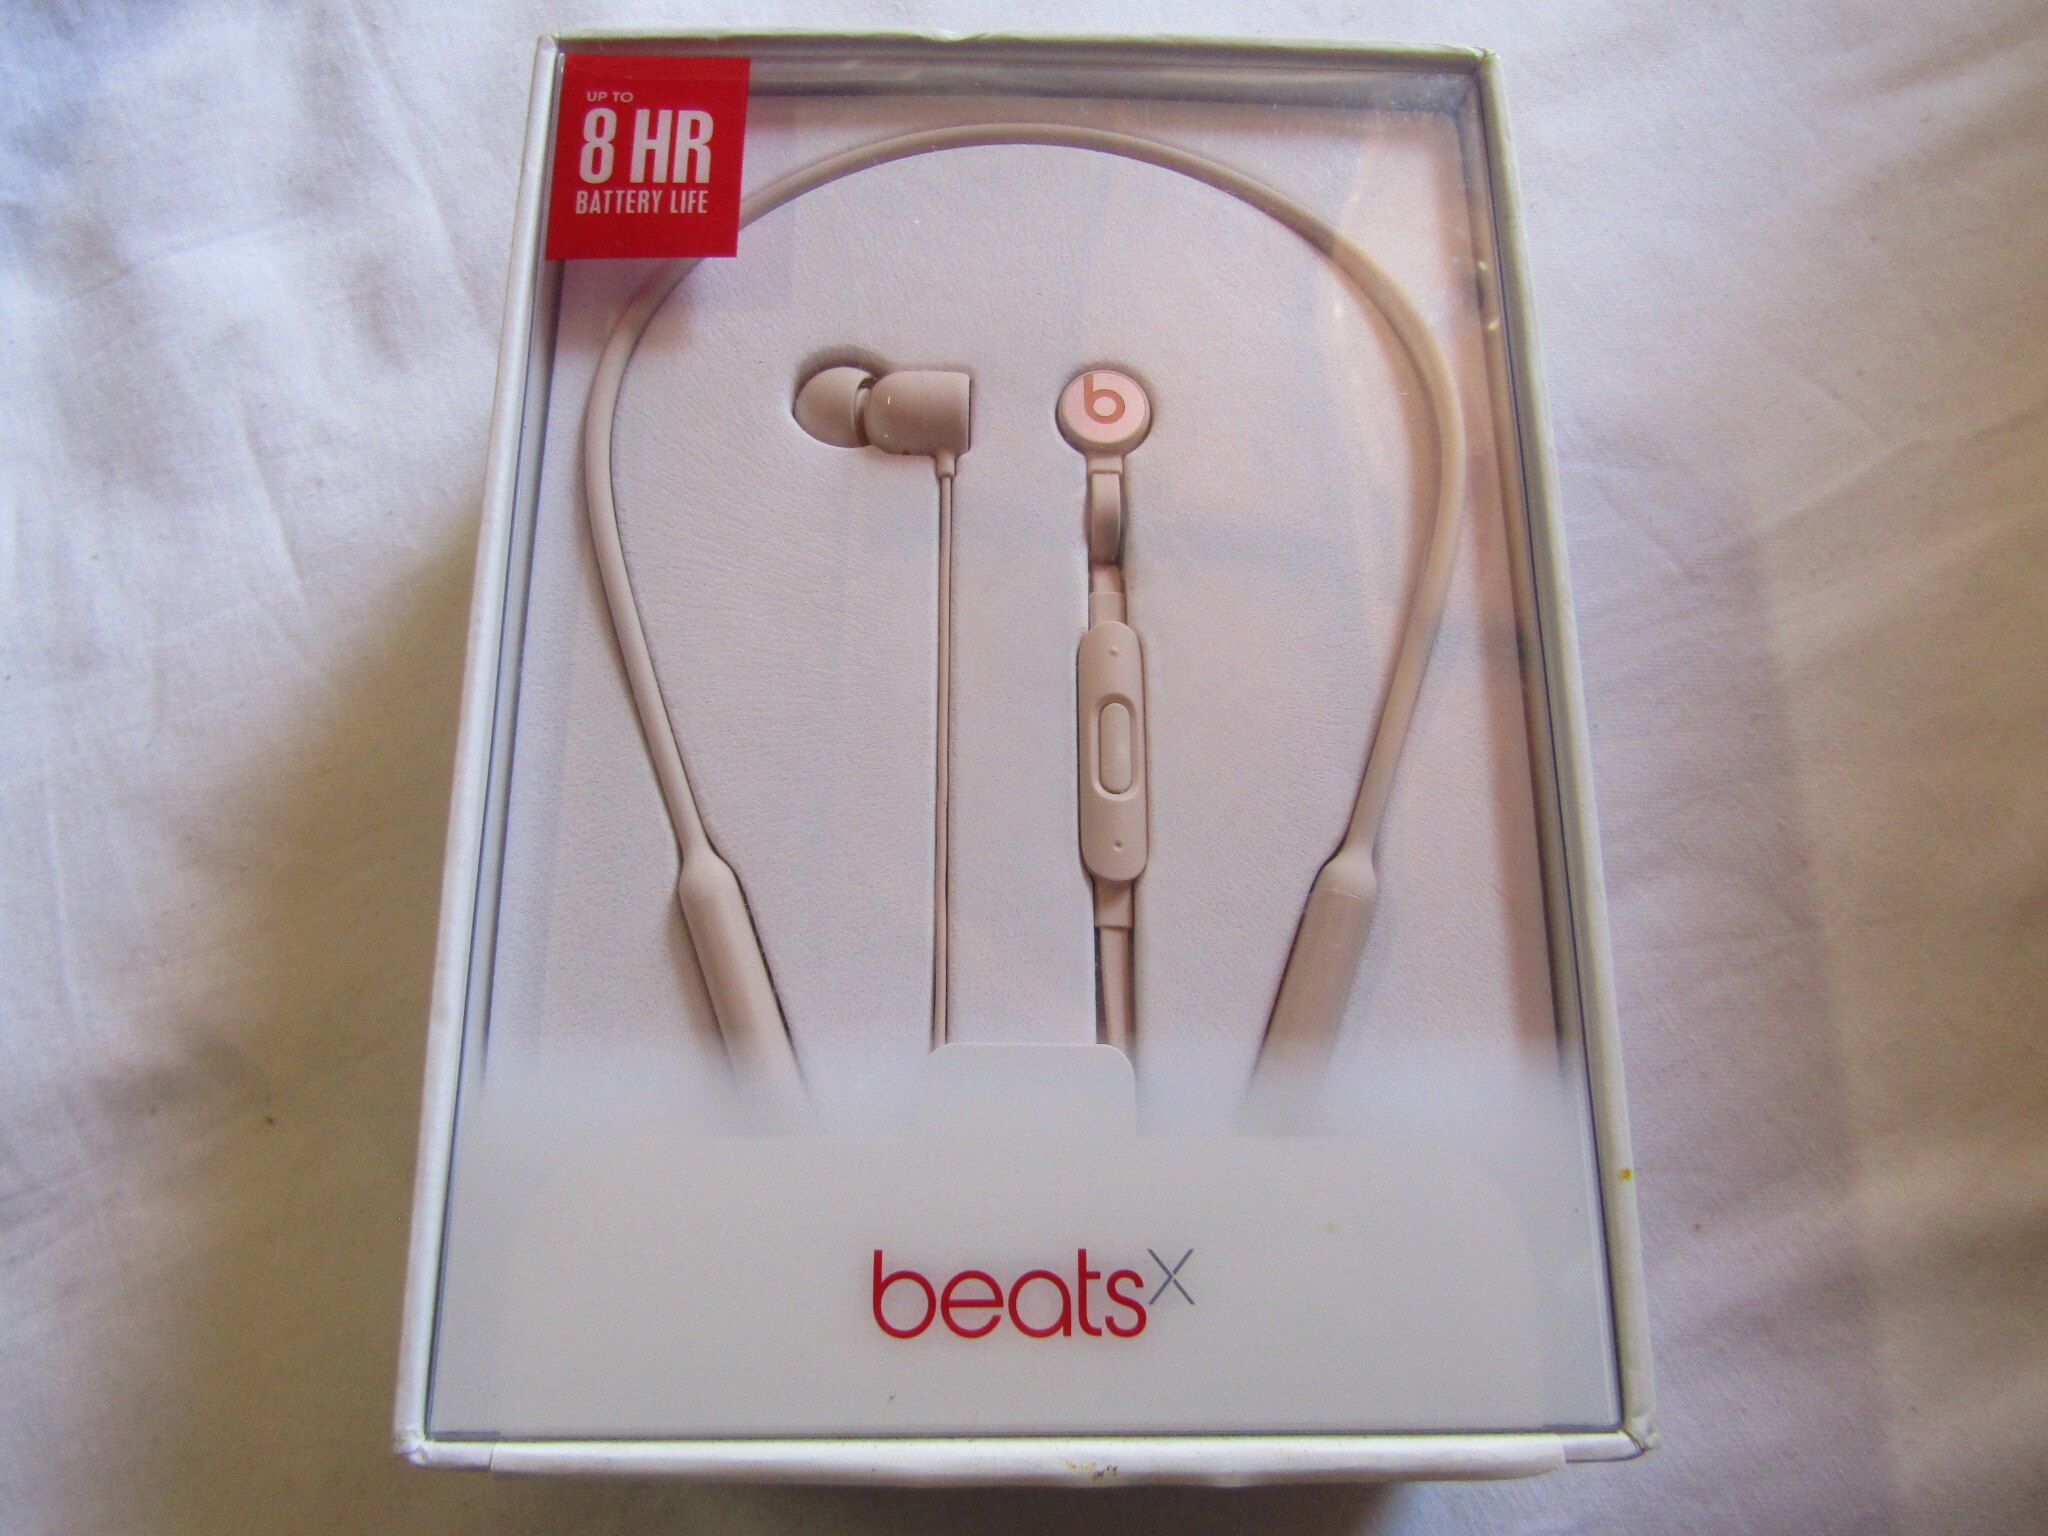 ee7885161ac Beatsx by Dre Beats X In-Ear Wireless Headphones - Matte Gold (MR3L2LL/